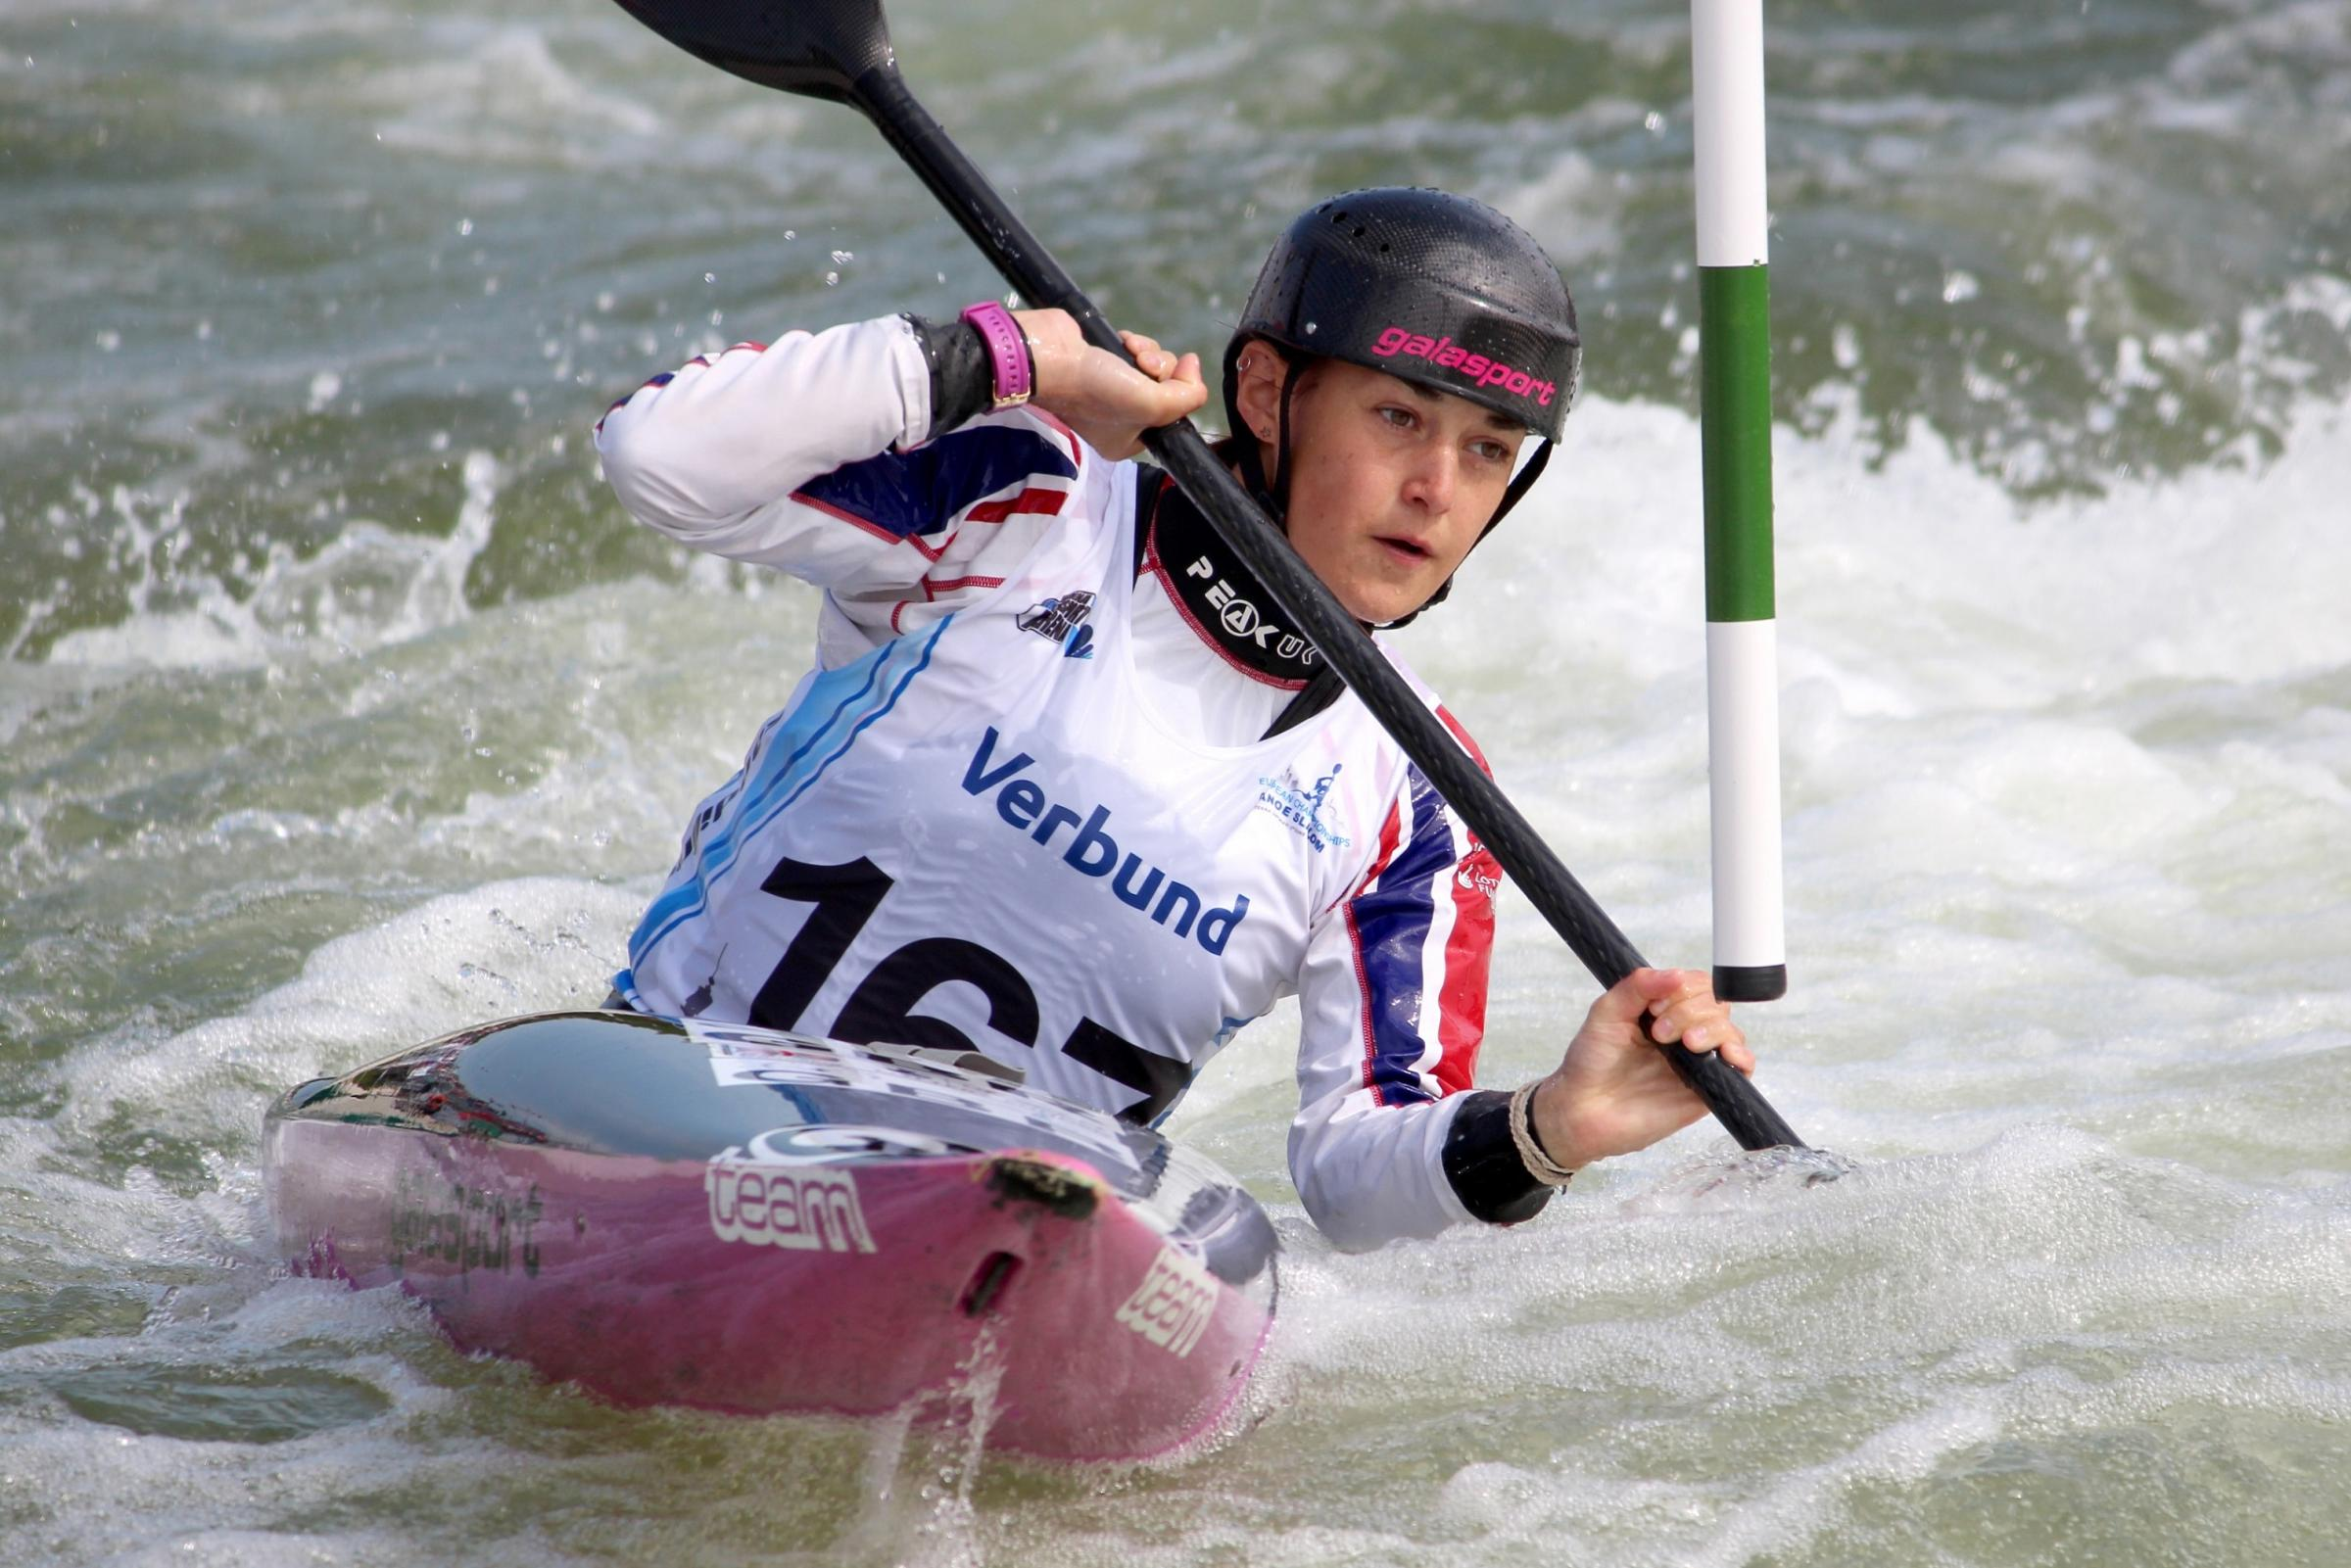 Beth Latham won gold in the women's K1 team e